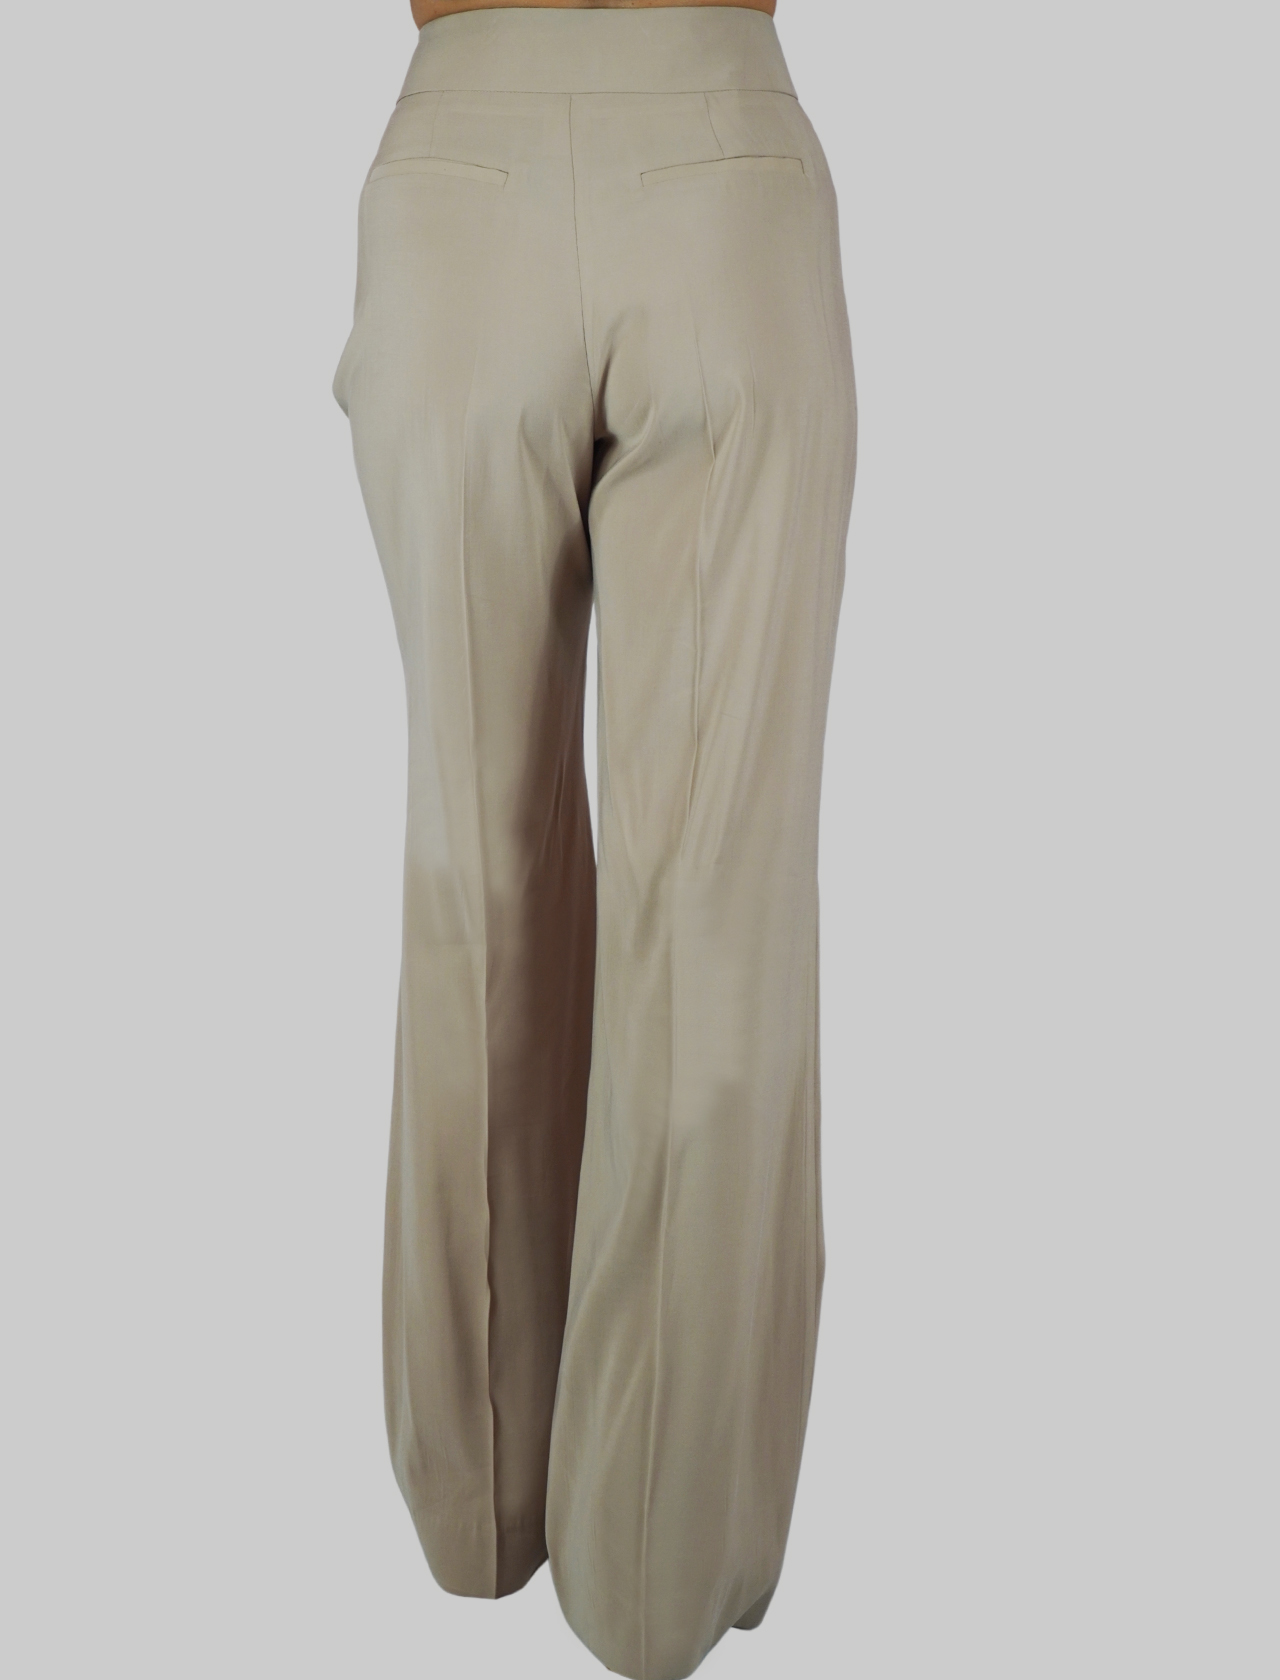 Women's Clothing Bow Pants in Wide Beige Fabric with Soft Fit Mercì | Skirts and Pants | P251U015